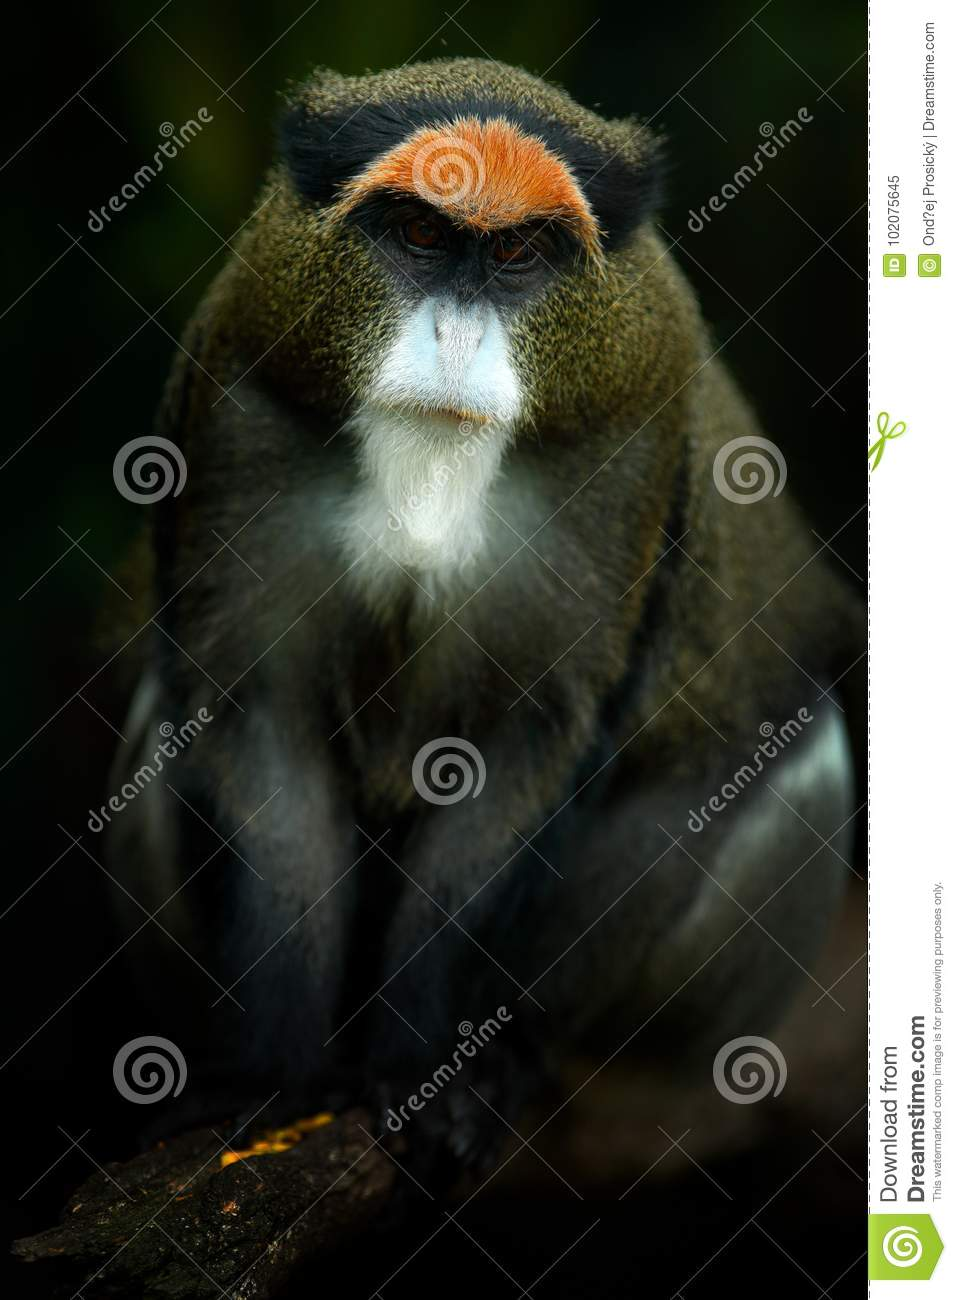 De Brazza`s monkey, Cercopithecus neglectus, sitting on tree branch in dark tropic forest. Animal in nature habitat, in forest. D